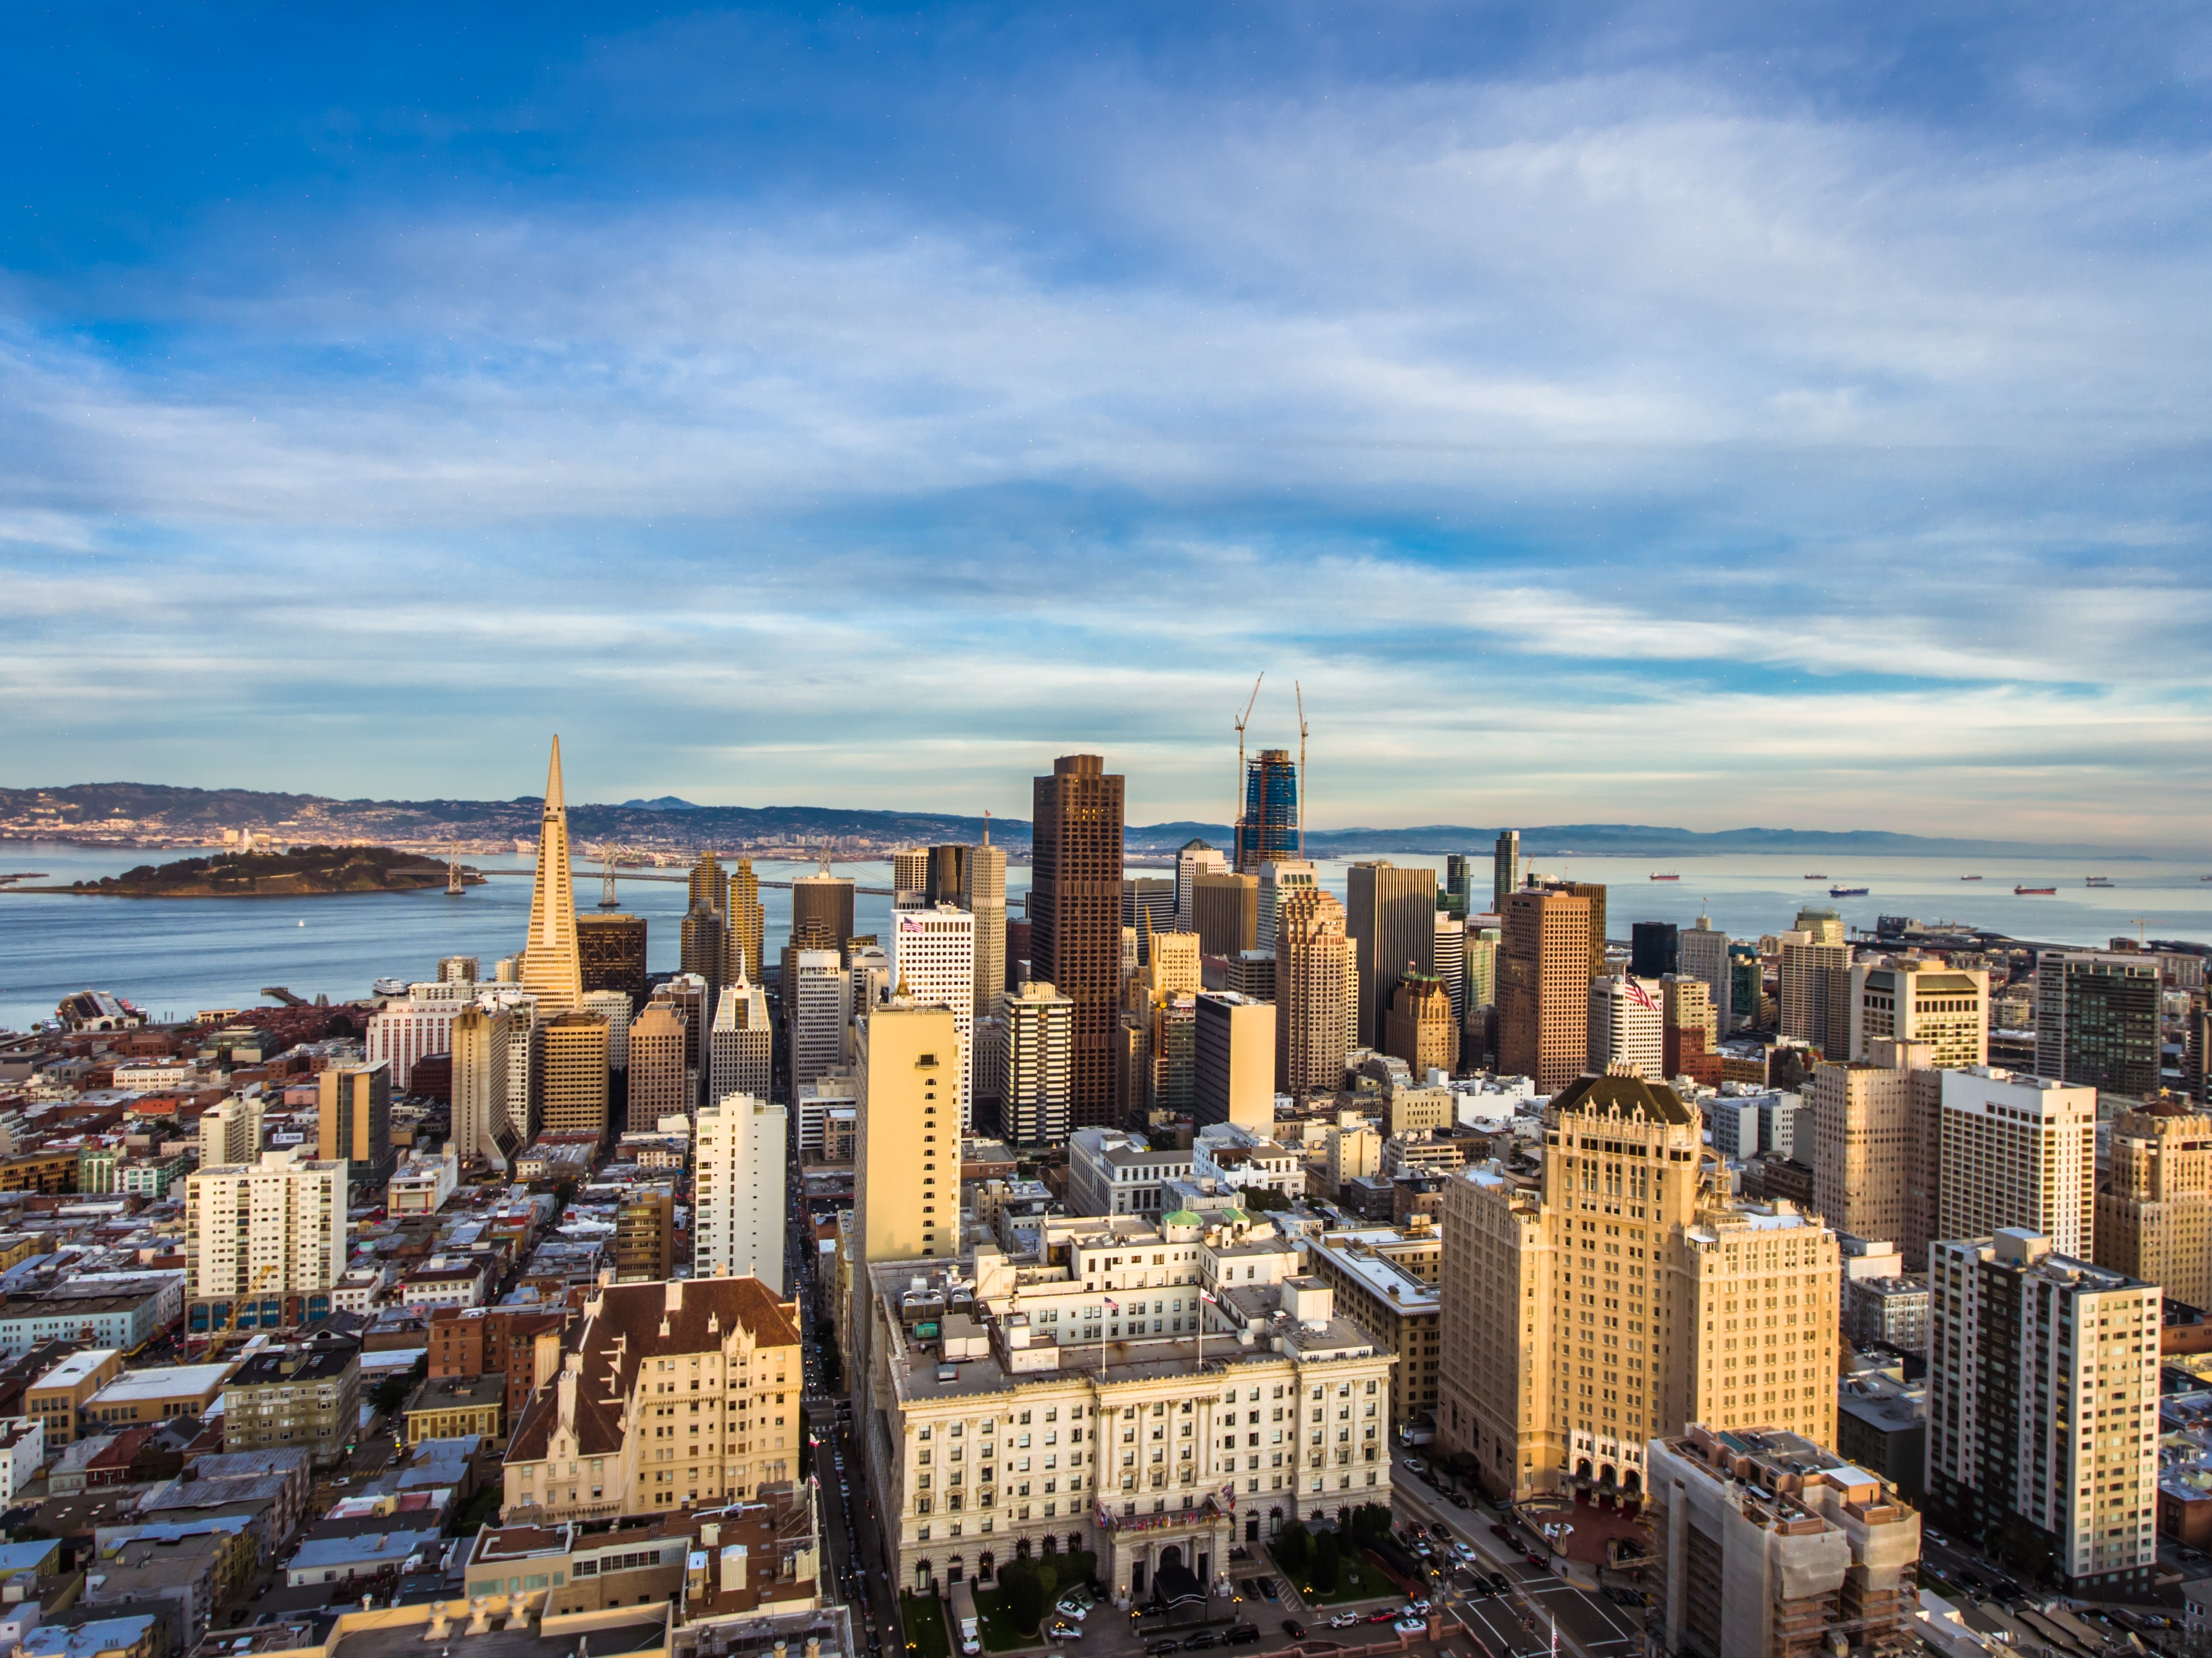 High Angle View of Cityscape Against Cloudy Sky, Aerial view, Office, Outdoors, Pacific, HQ Photo